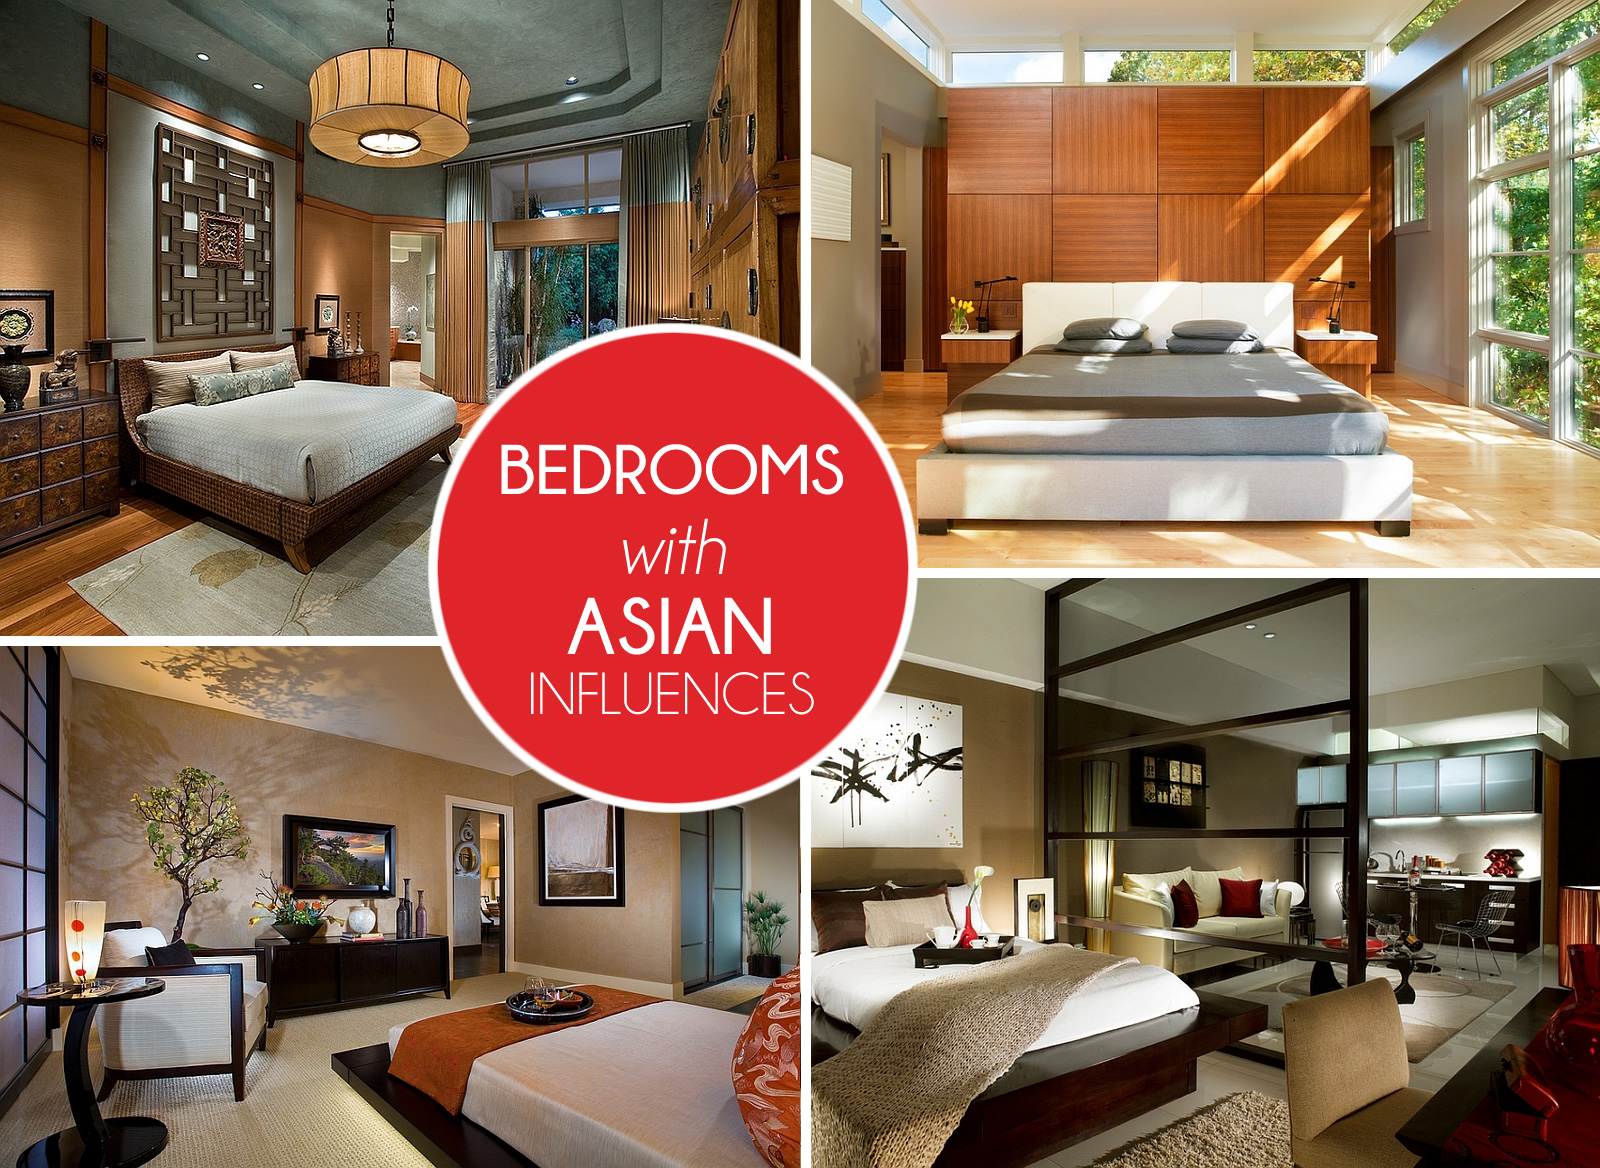 asian bedrooms design ideas - Inspired Home Design